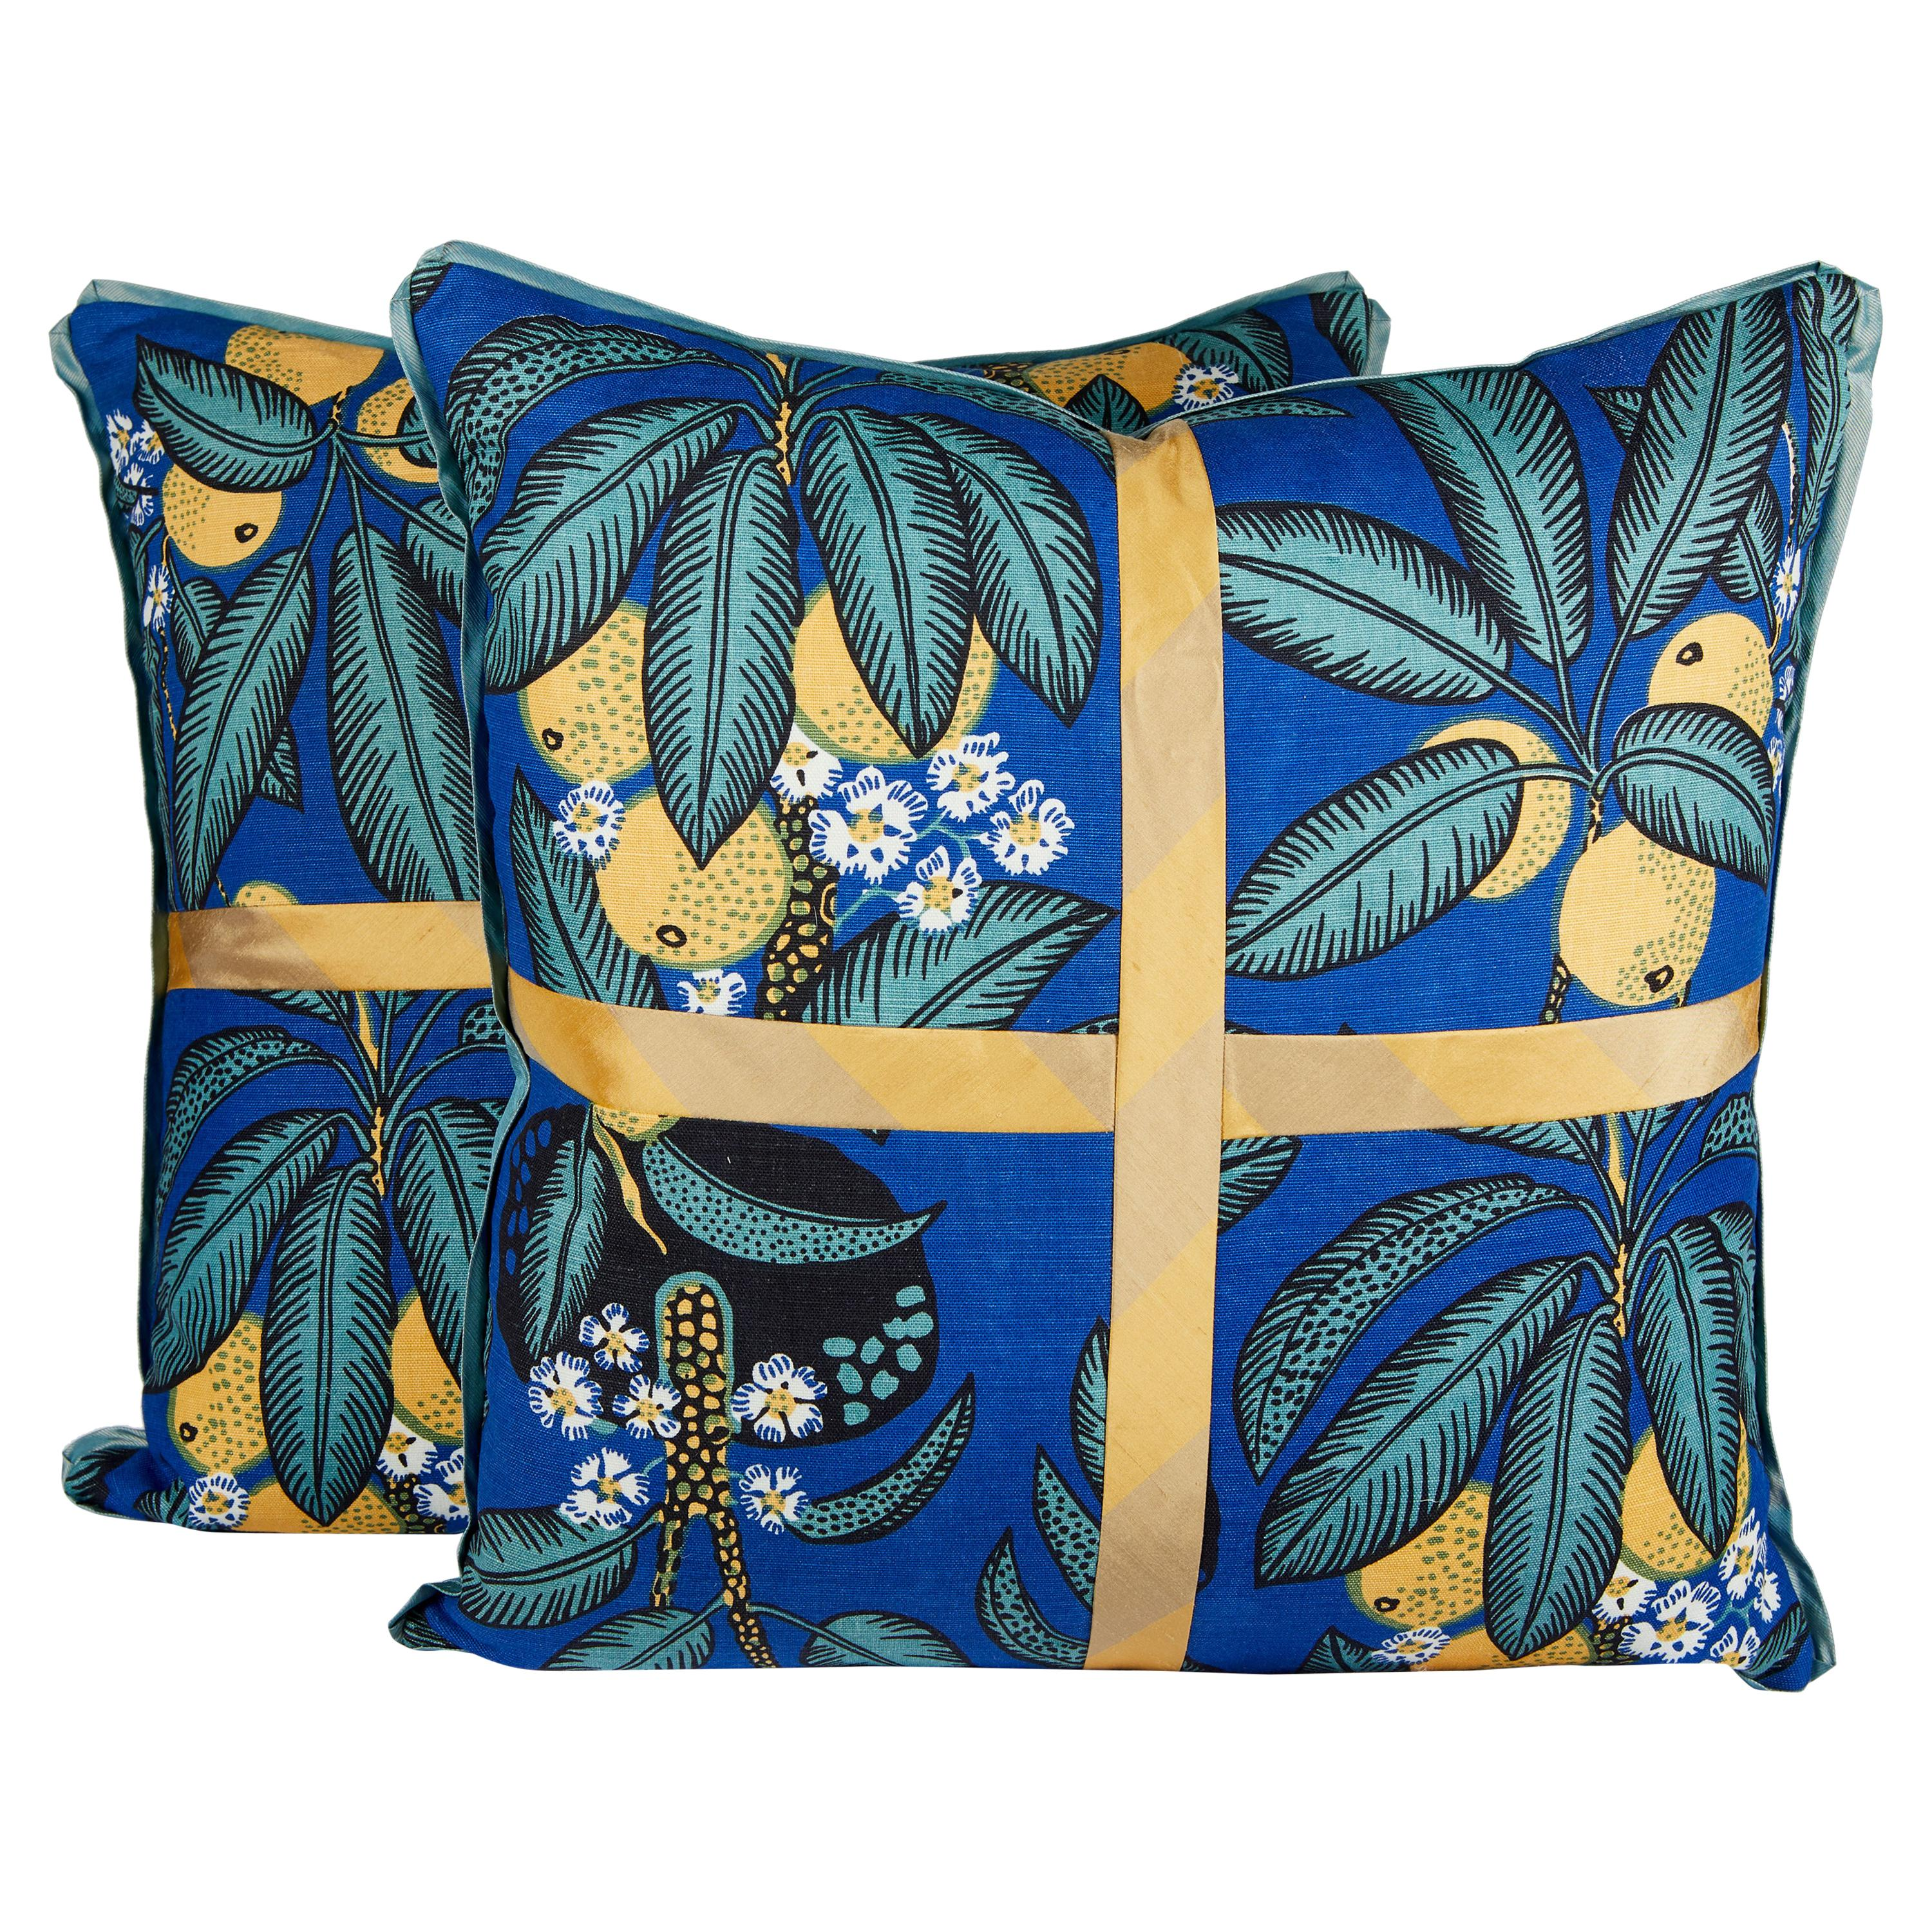 Pair of Josef Frank Cushions in the Notturno Pattern